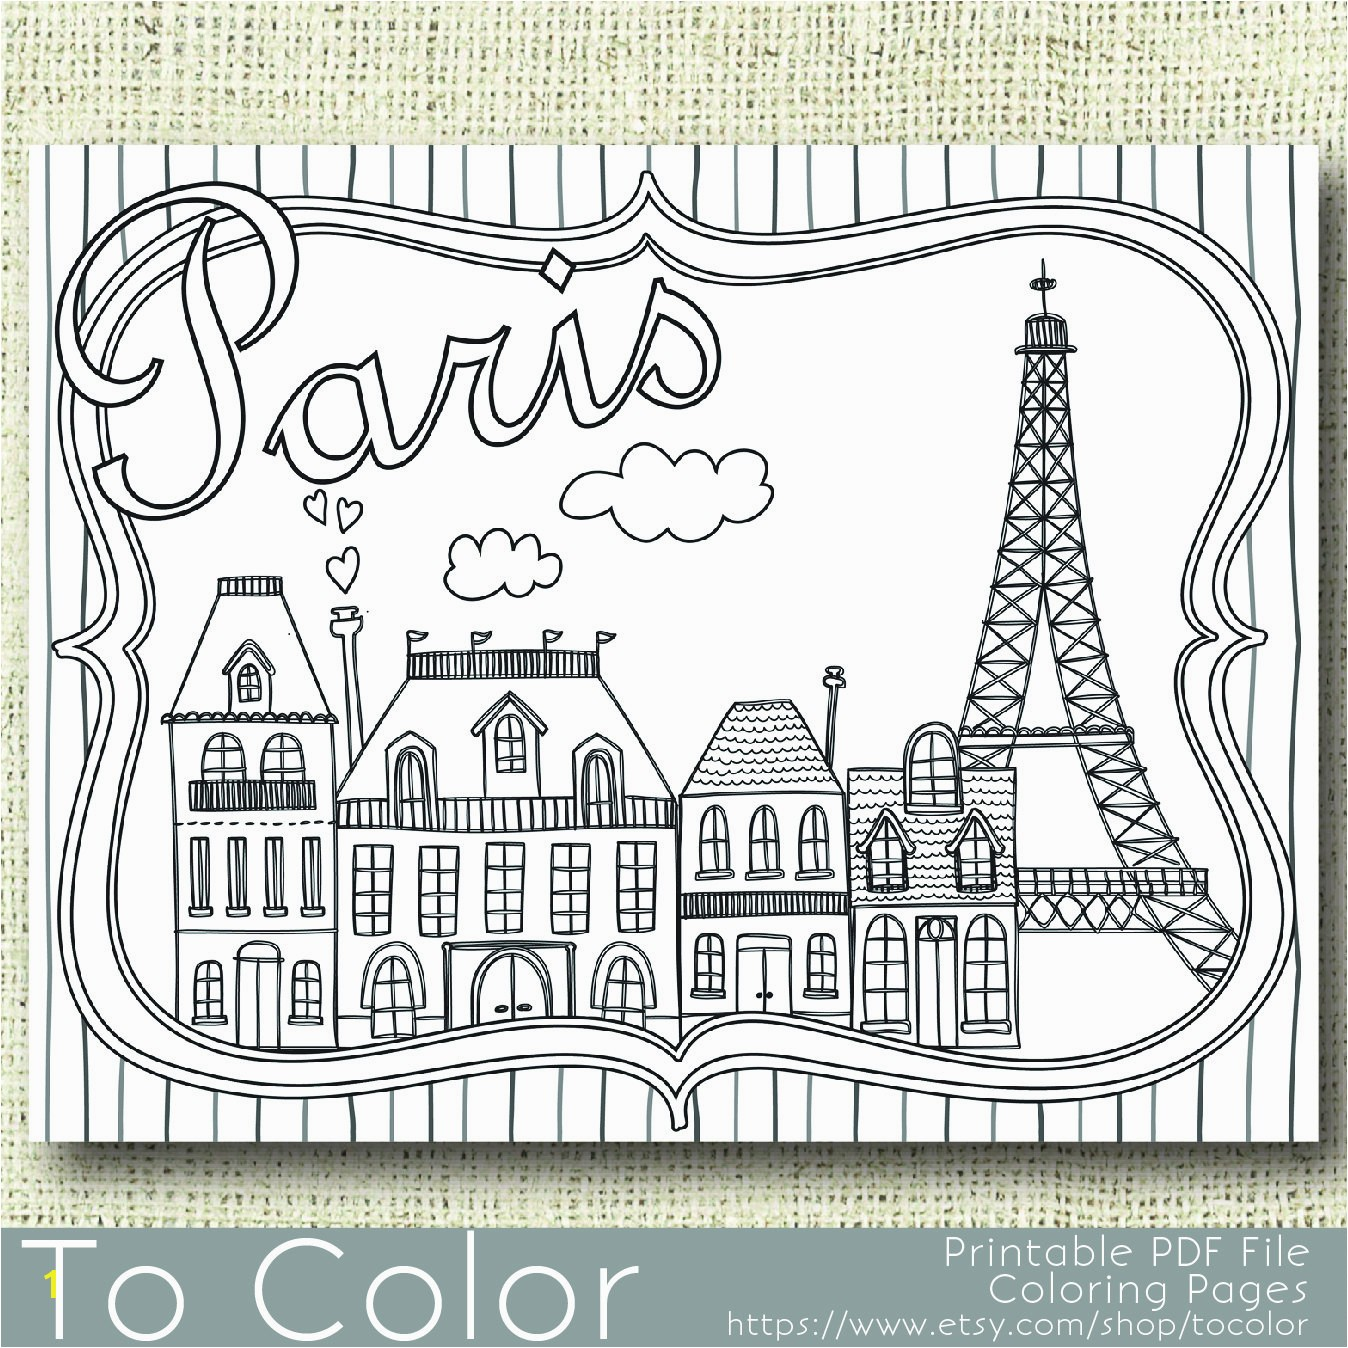 Kelso S Choices Coloring Pages Collection Pics Conflict Resolution Coloring Pages Awesome Paris Coloring Pages for Adults Image